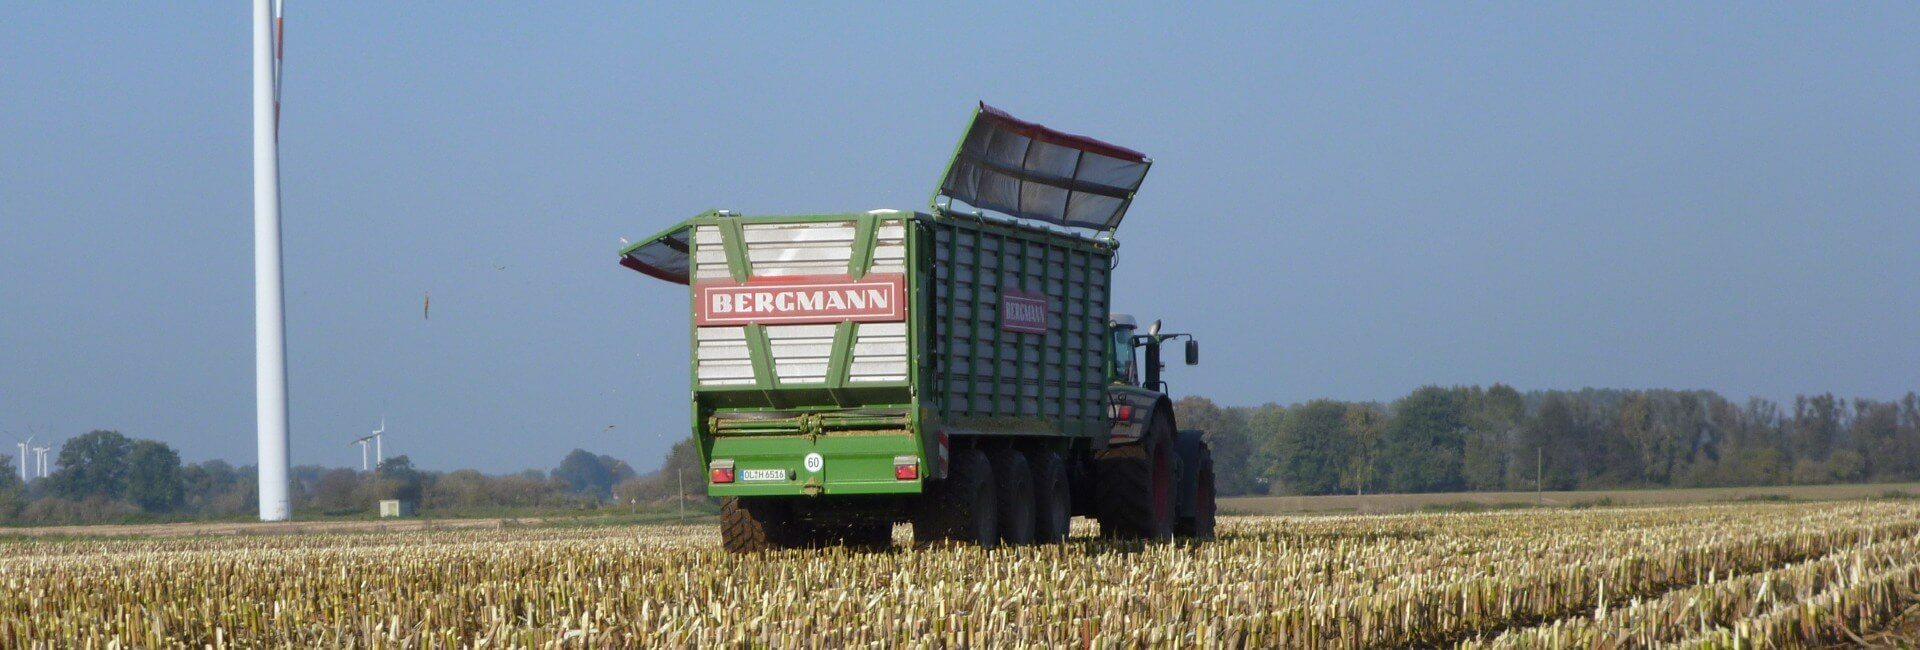 Bergmann silage trailer with covers maize harvest